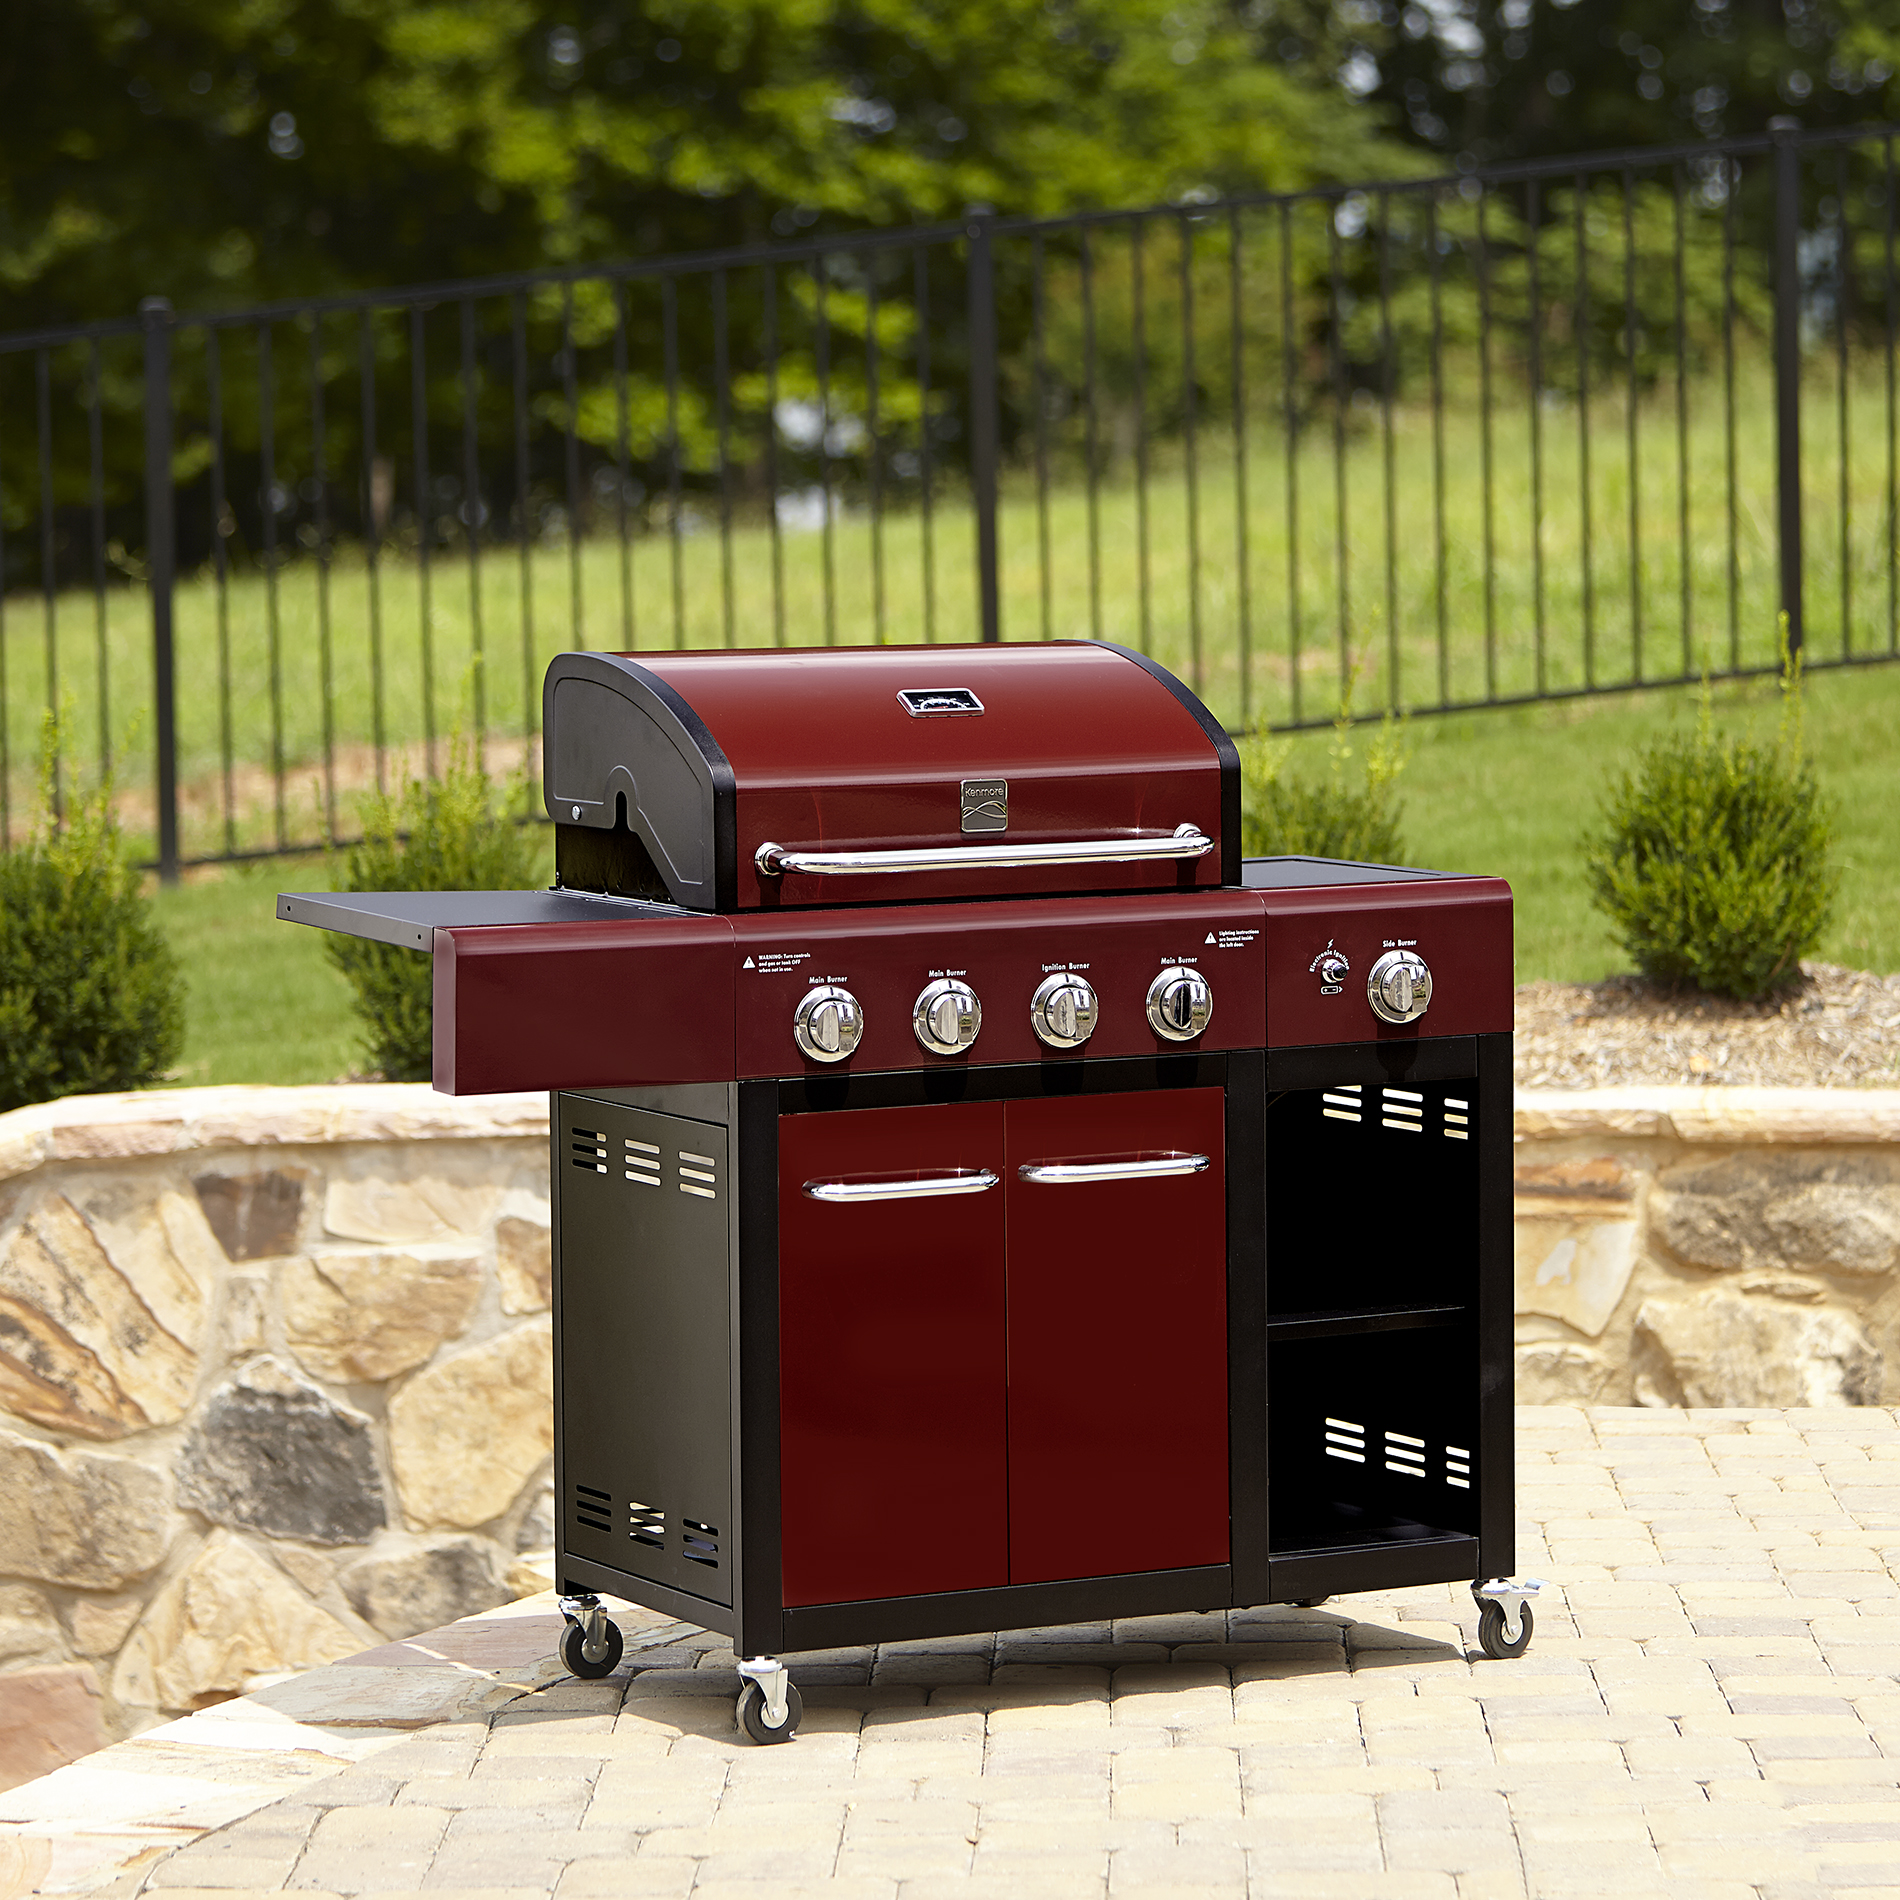 Kenmore 4 Burner Red Gas Grill with Storage* Limited Availability